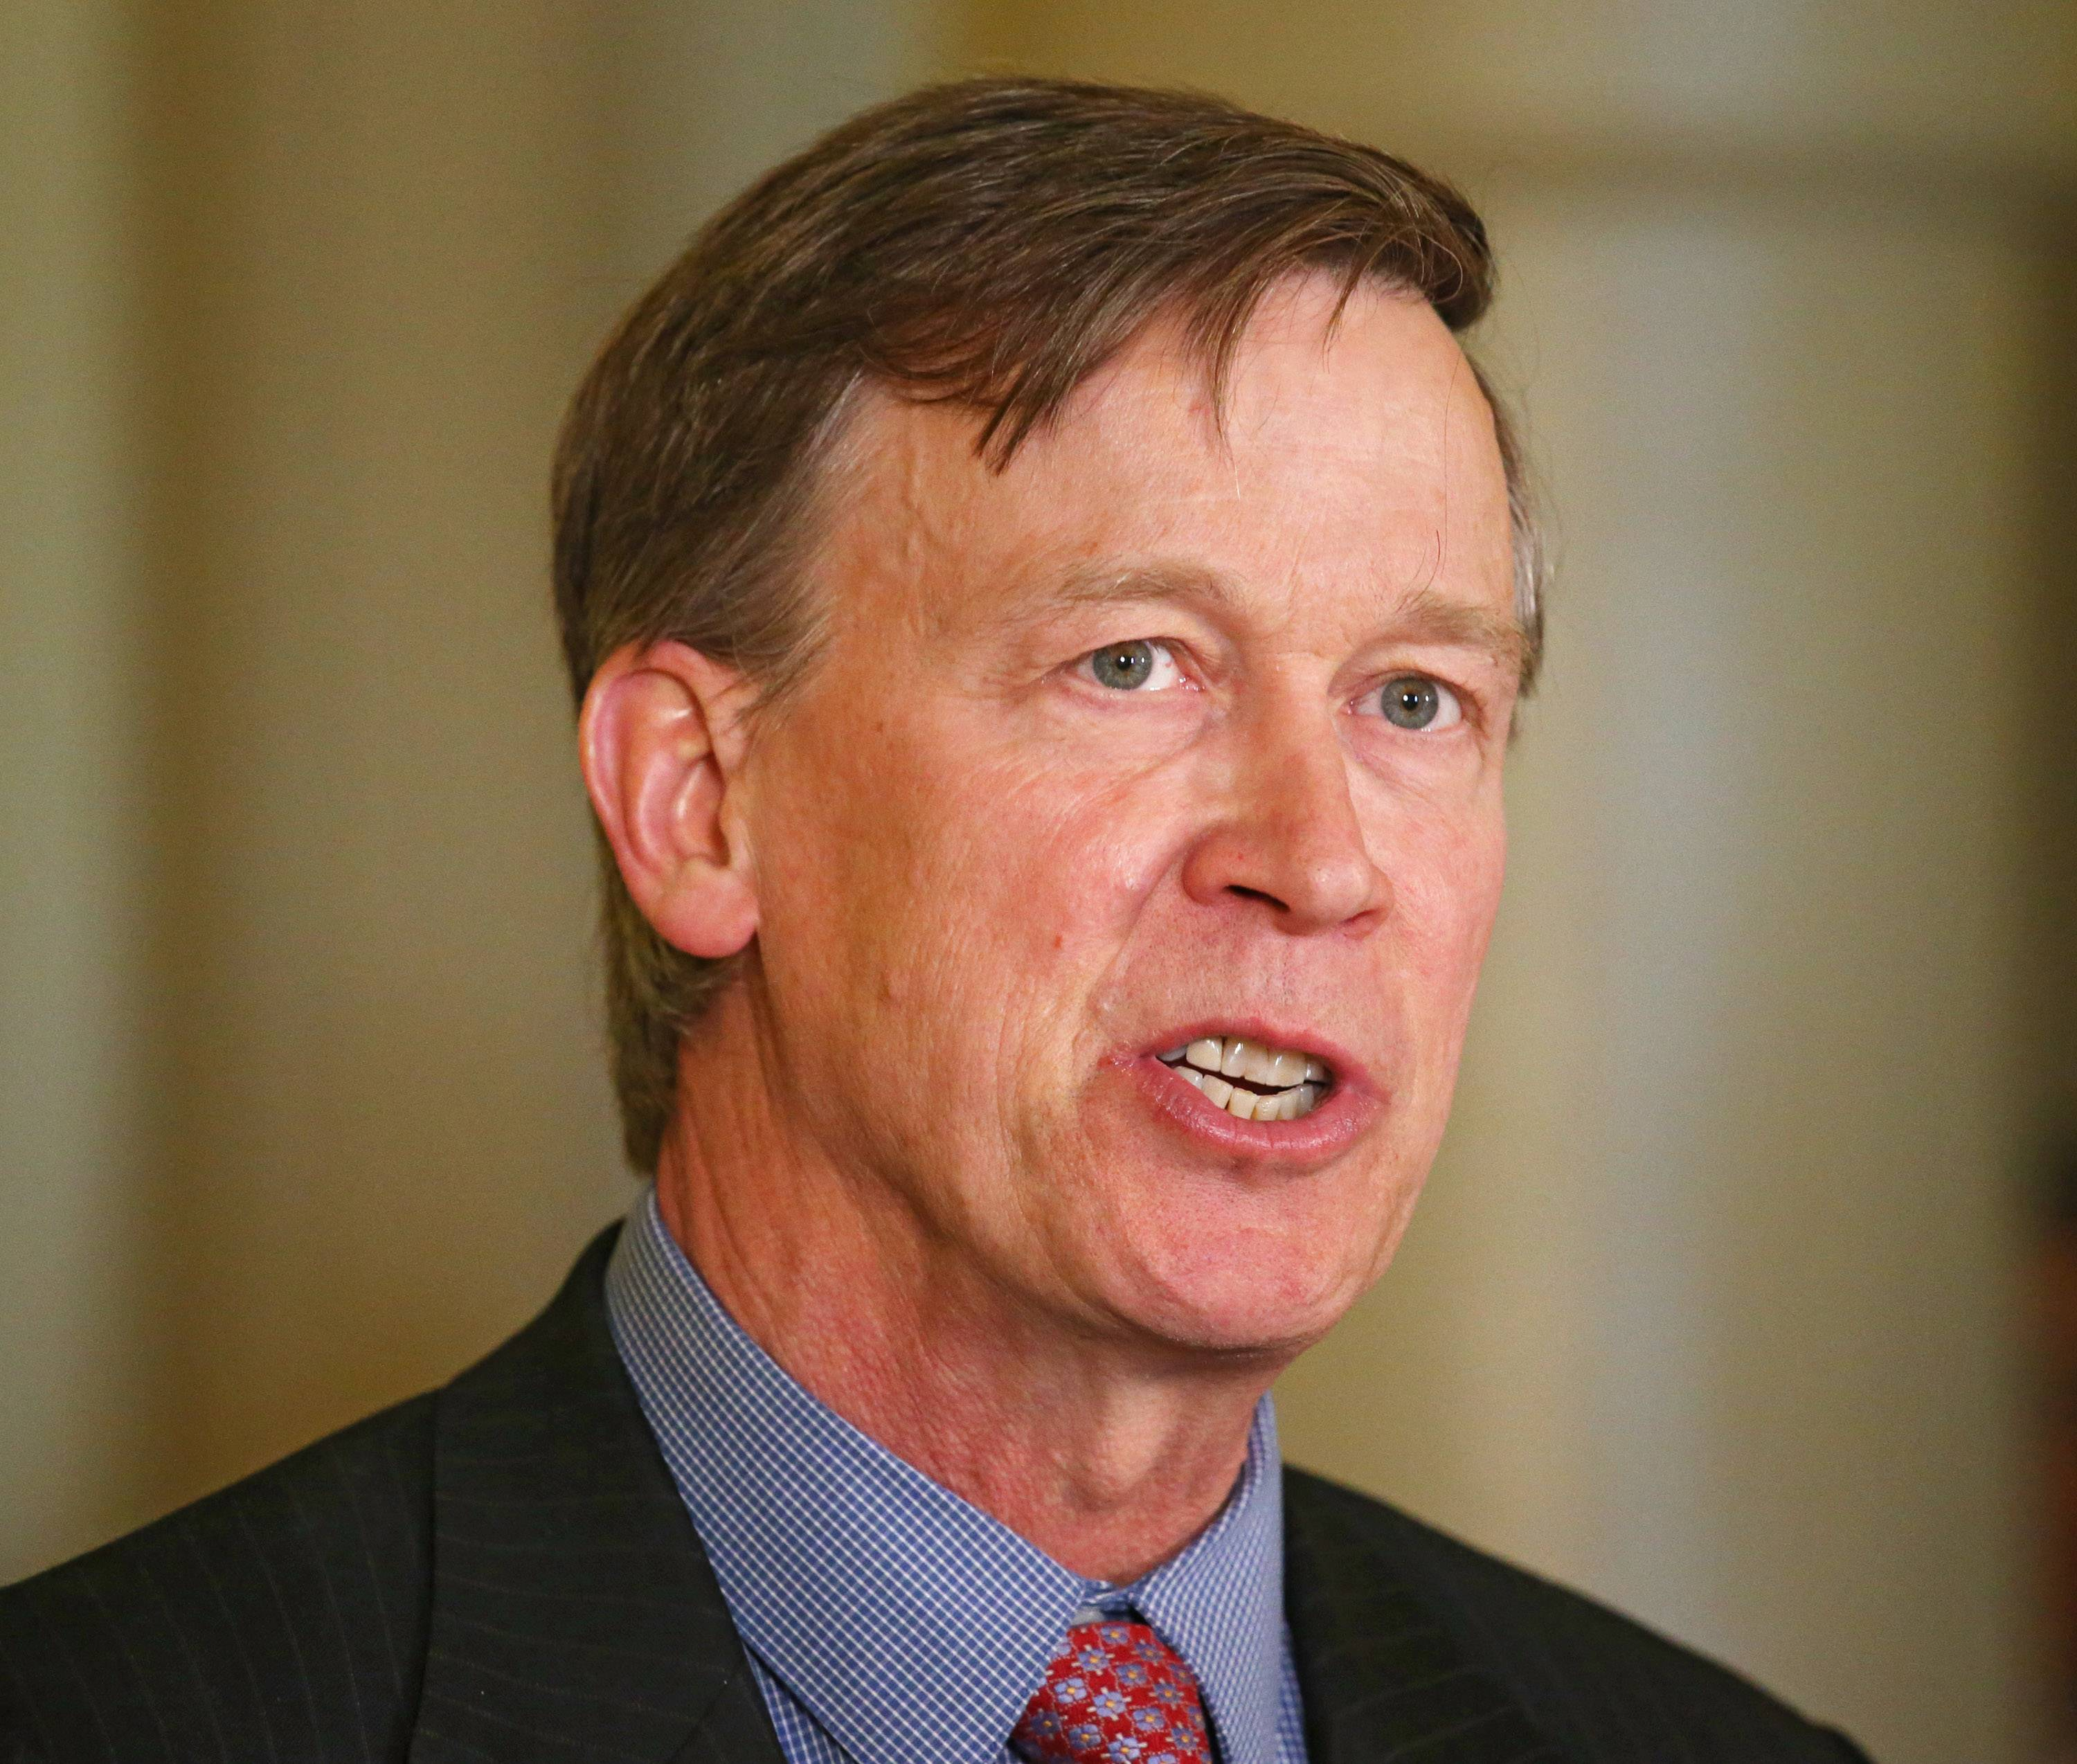 Colorado Gov. John Hickenlooper speaks at a news conference Wednesday at the Capitol in Denver.